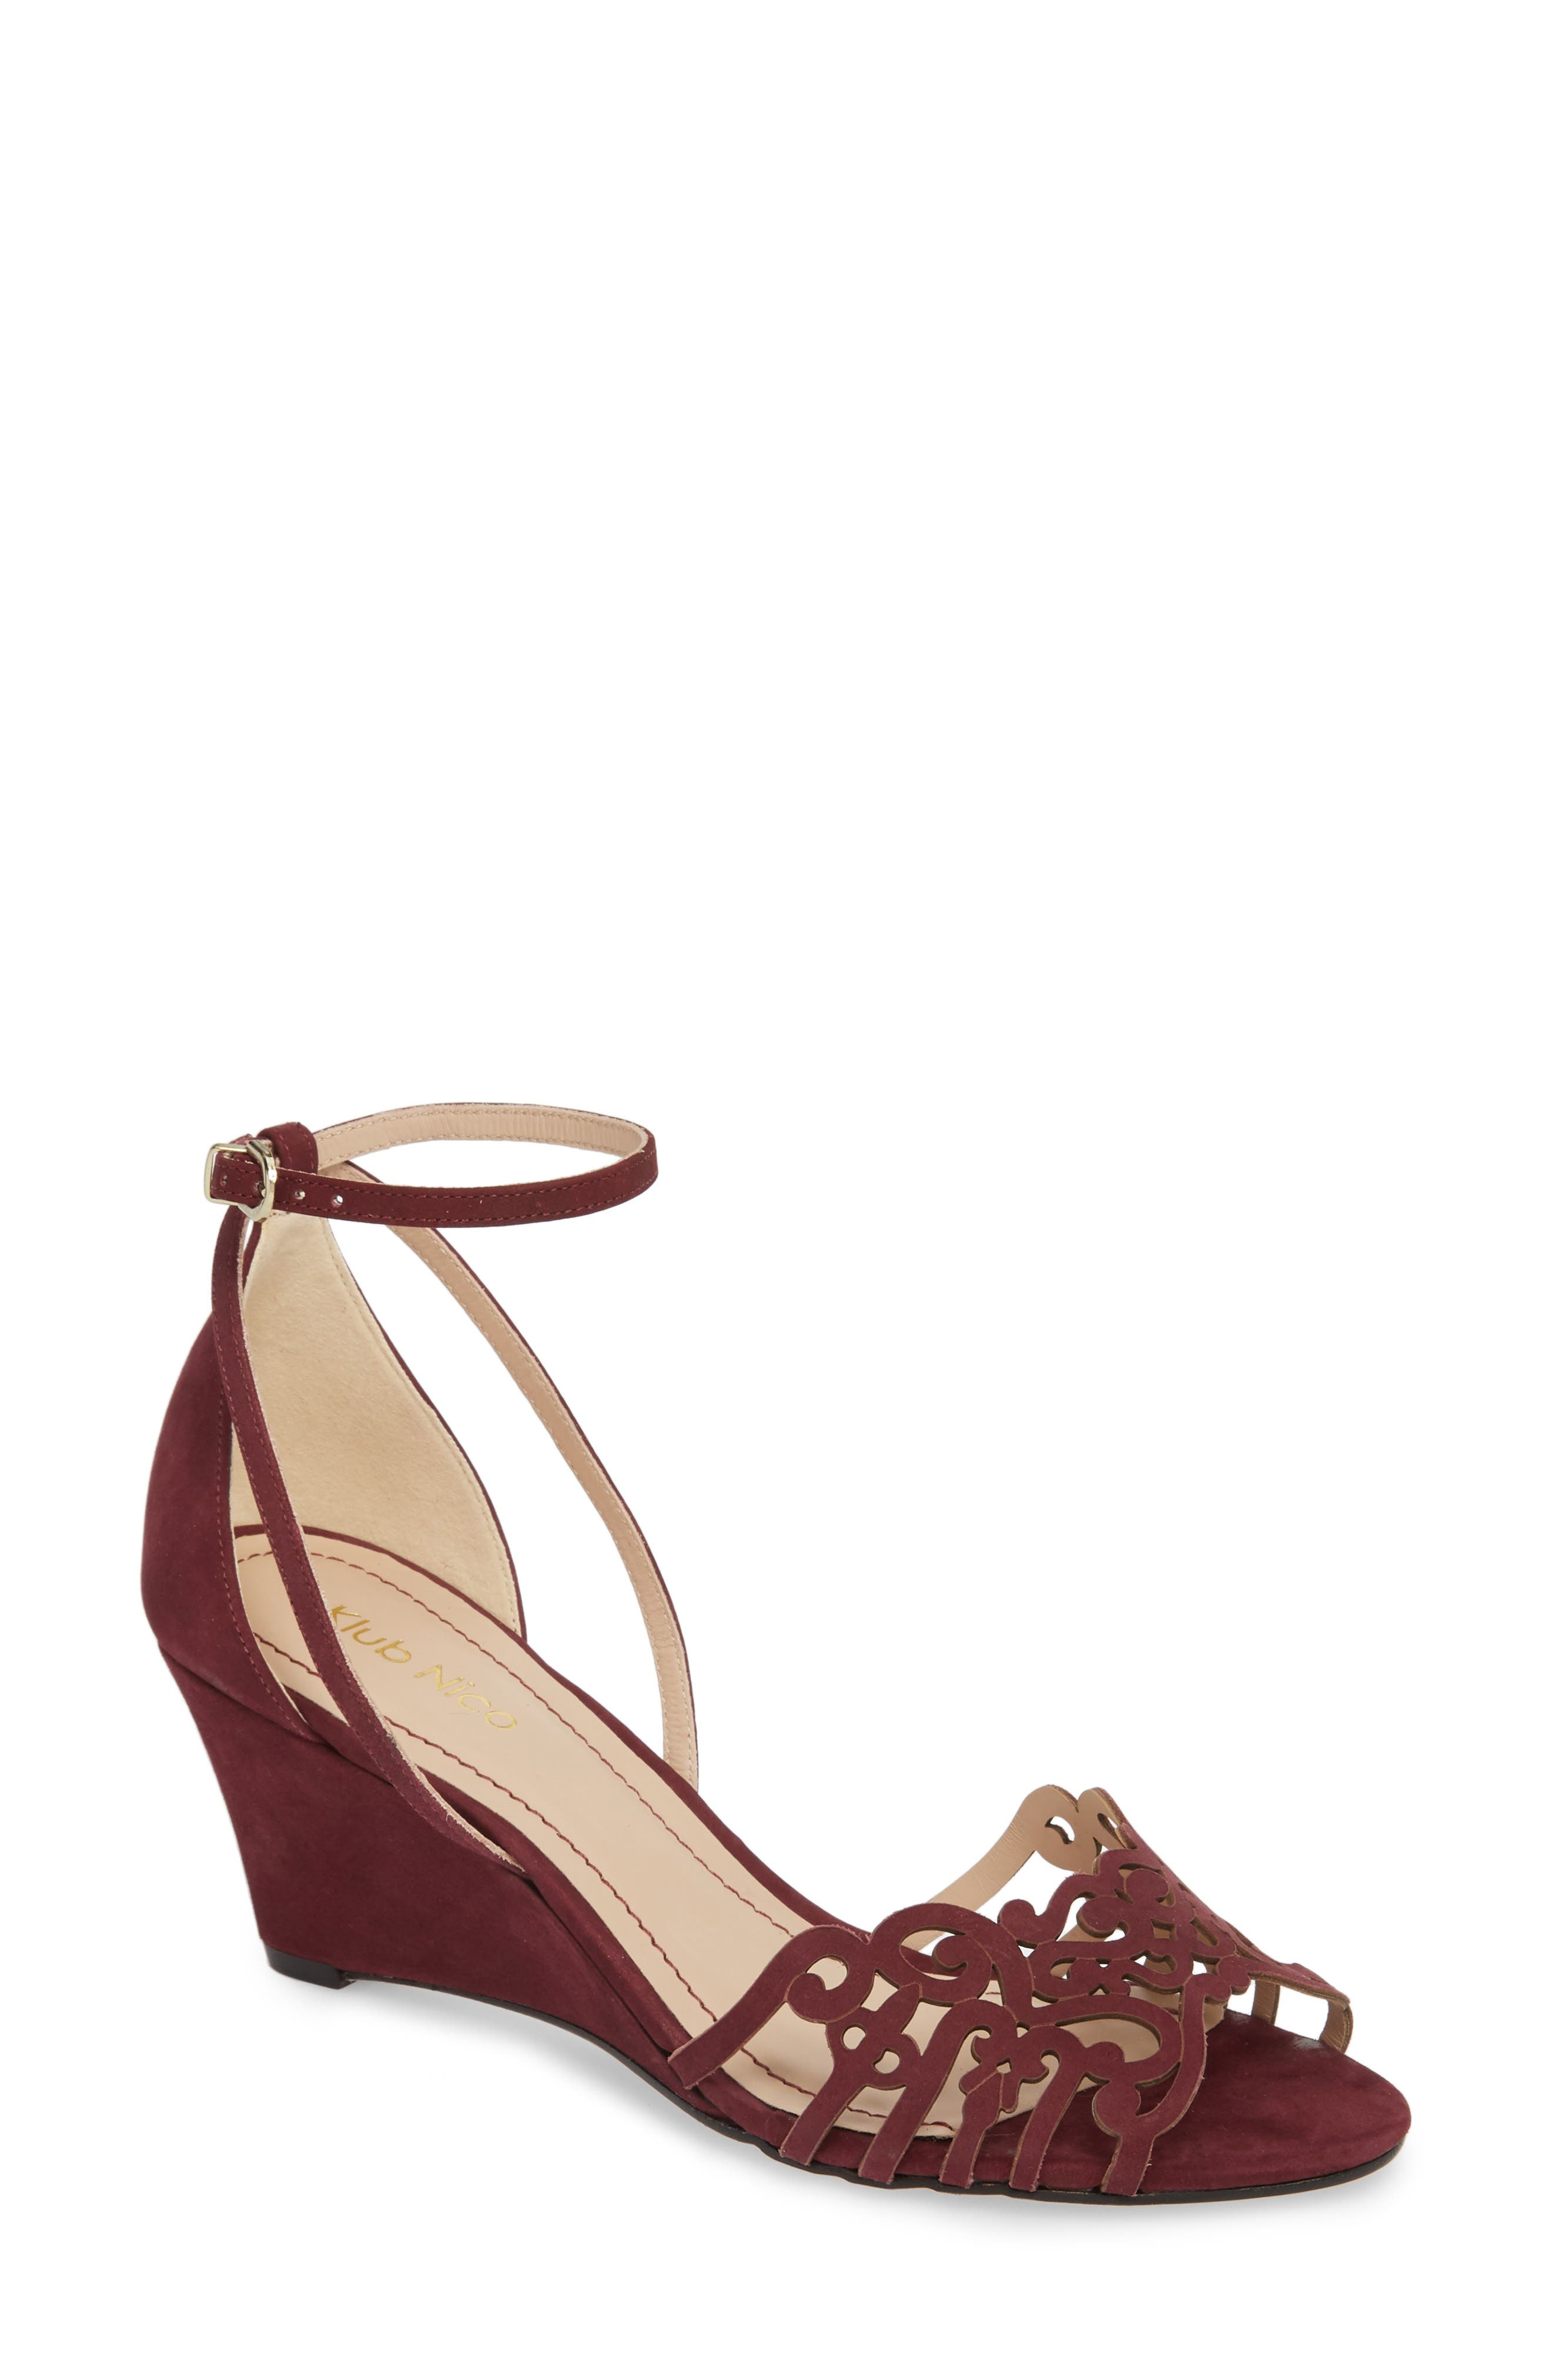 'Kingston' Ankle Strap Wedge Sandal,                             Main thumbnail 1, color,                             Wine Leather